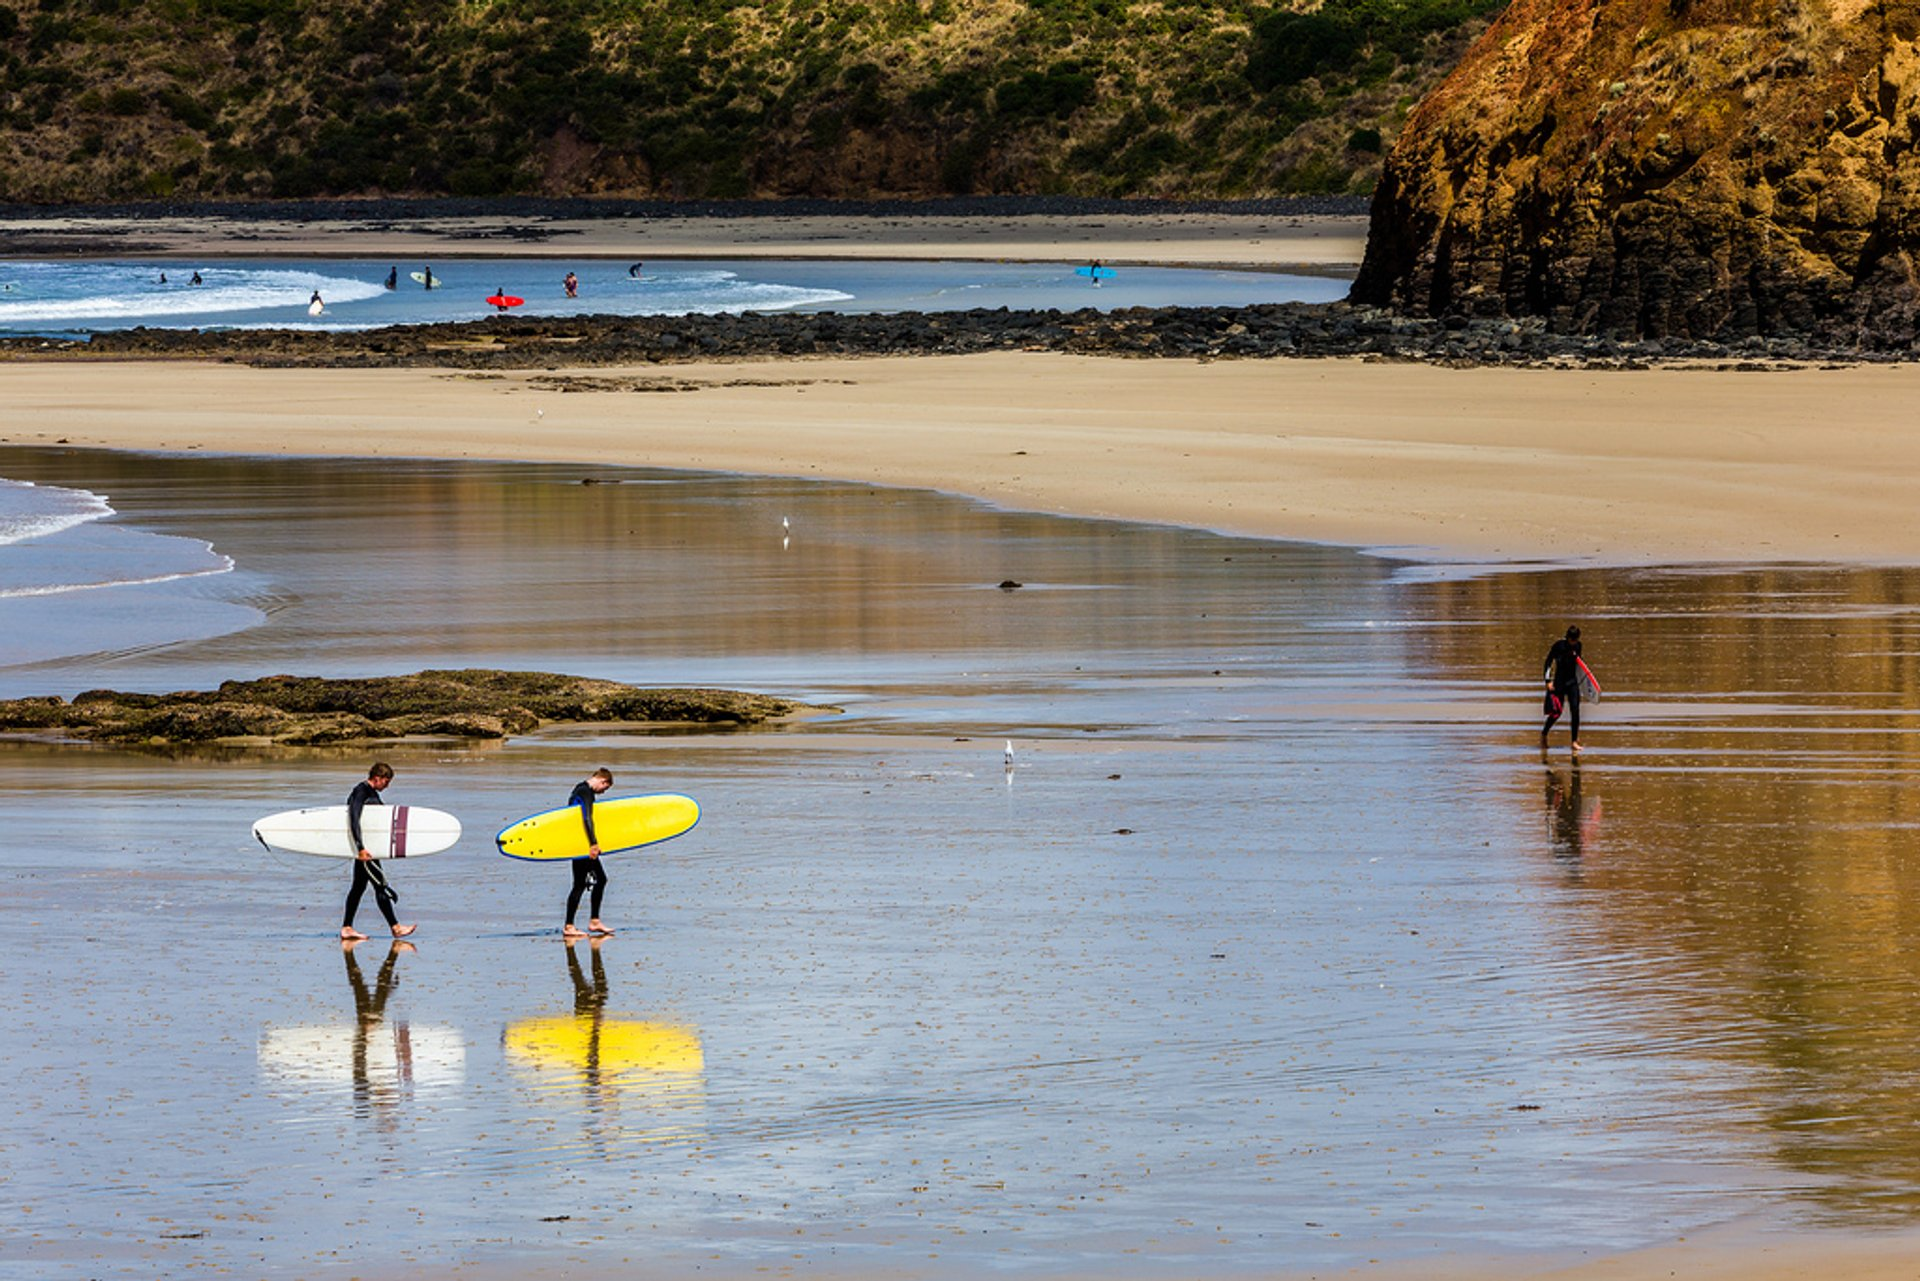 Retiring surfers down at Smiths Beach, Phillip Island, last Summer 2019